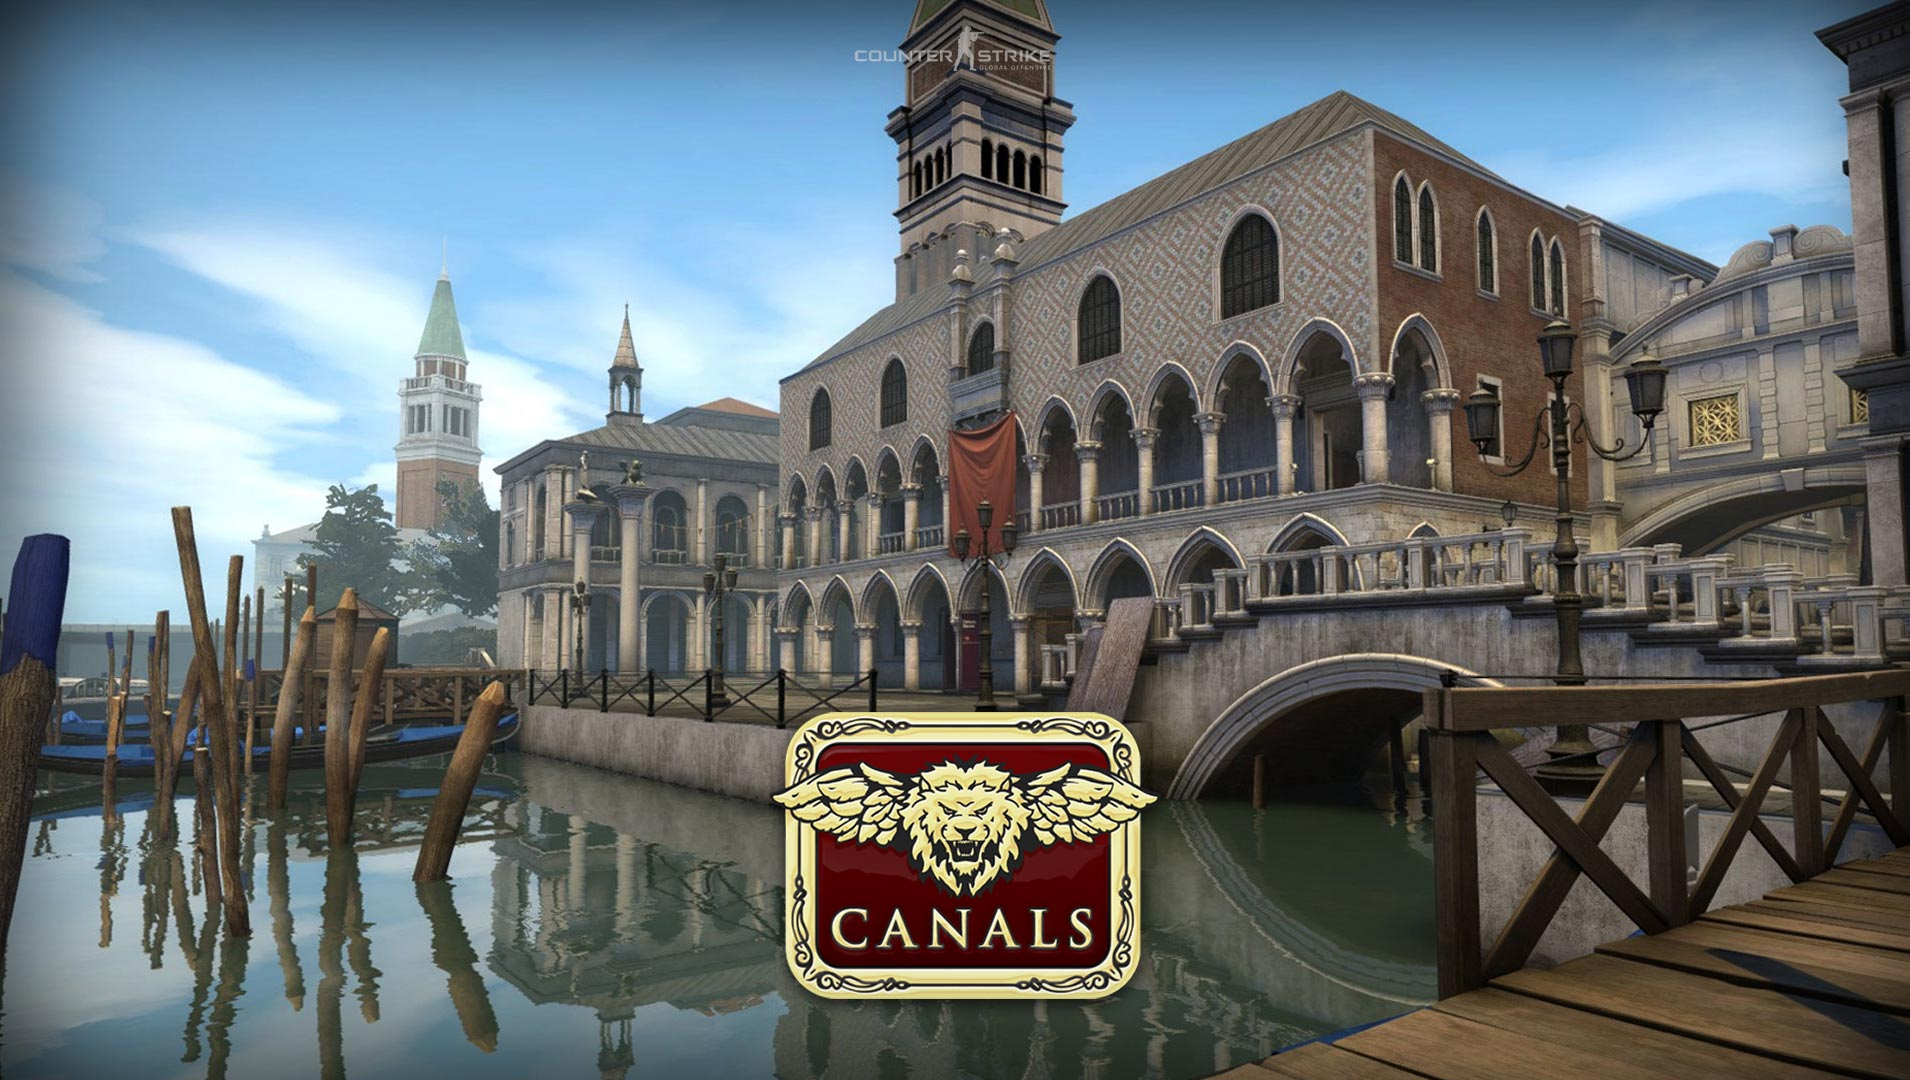 Counter Strike: Global Offensive » Take a trip to the Canals